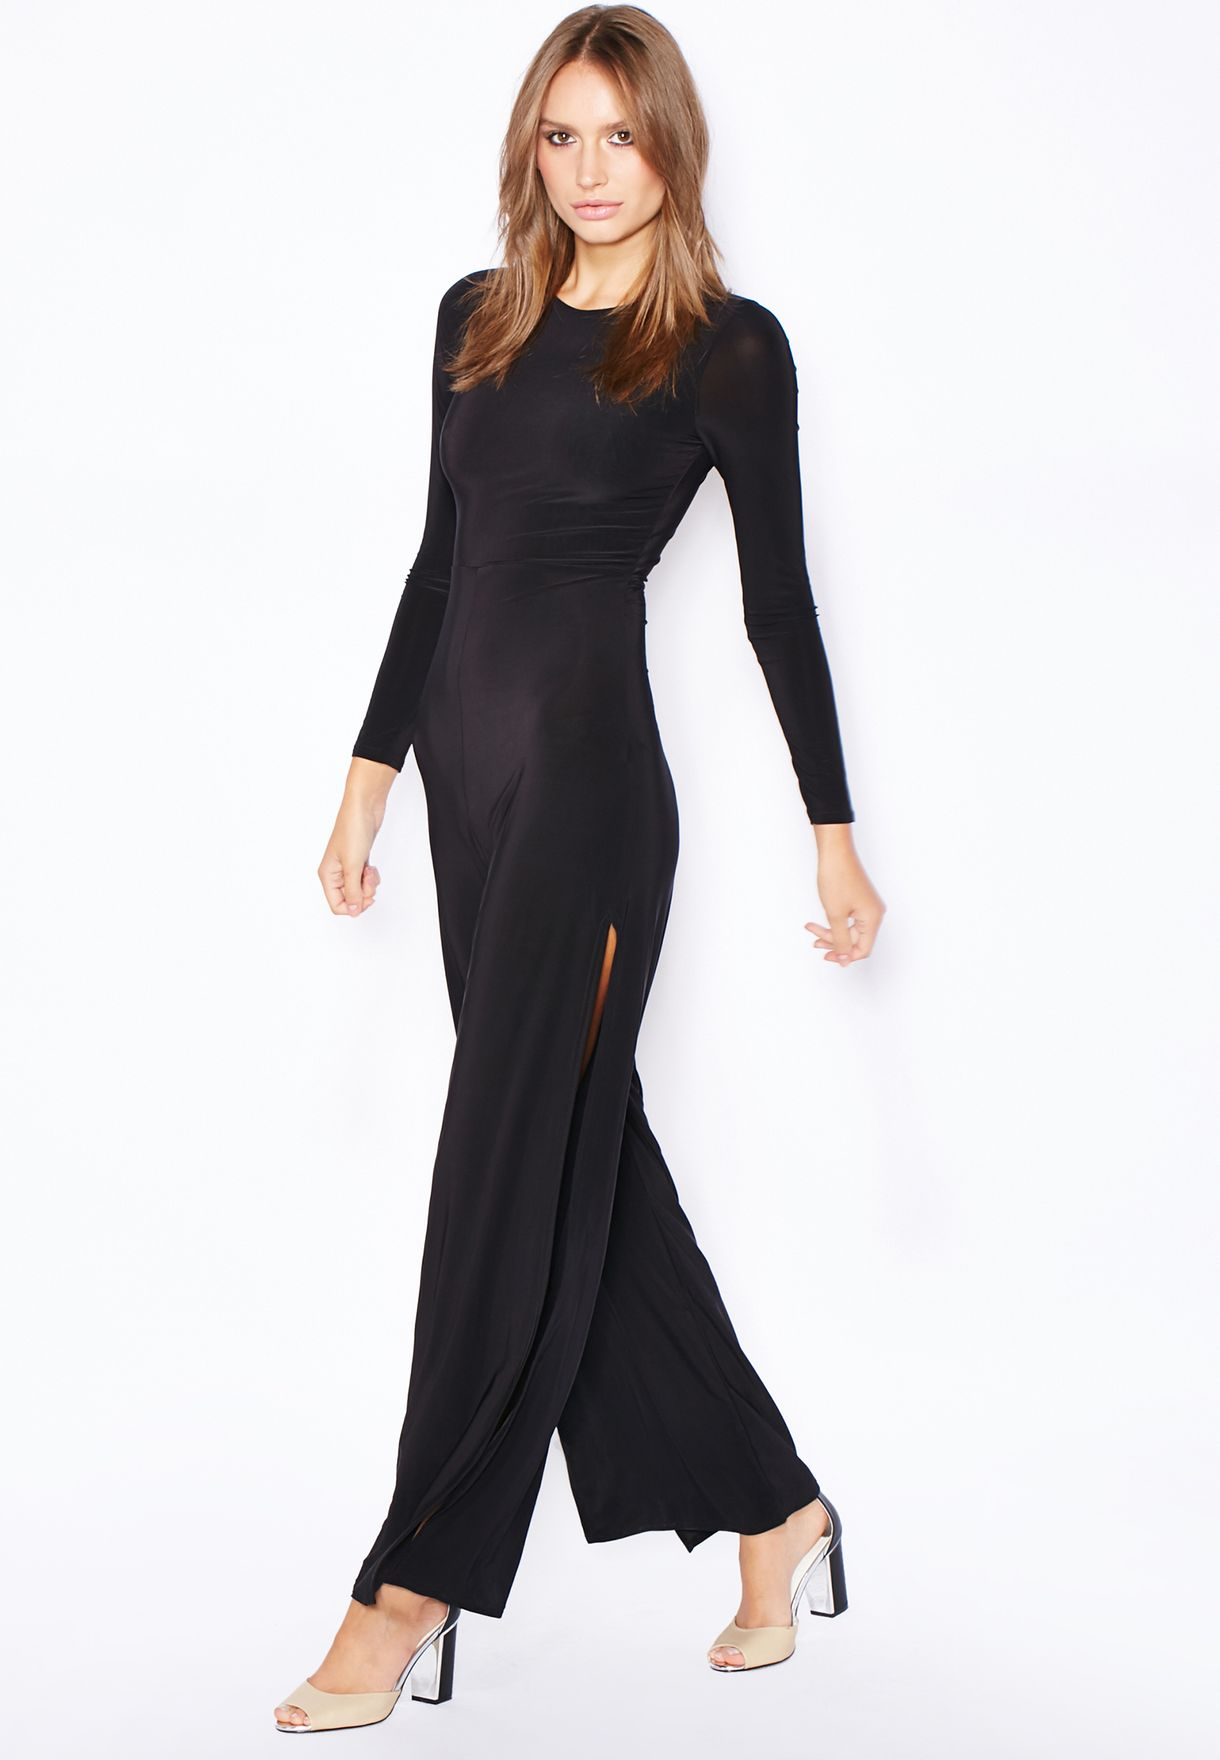 be14ae3f242 Shop Missguided black Slinky Slit Jumpsuit for Women in Qatar ...